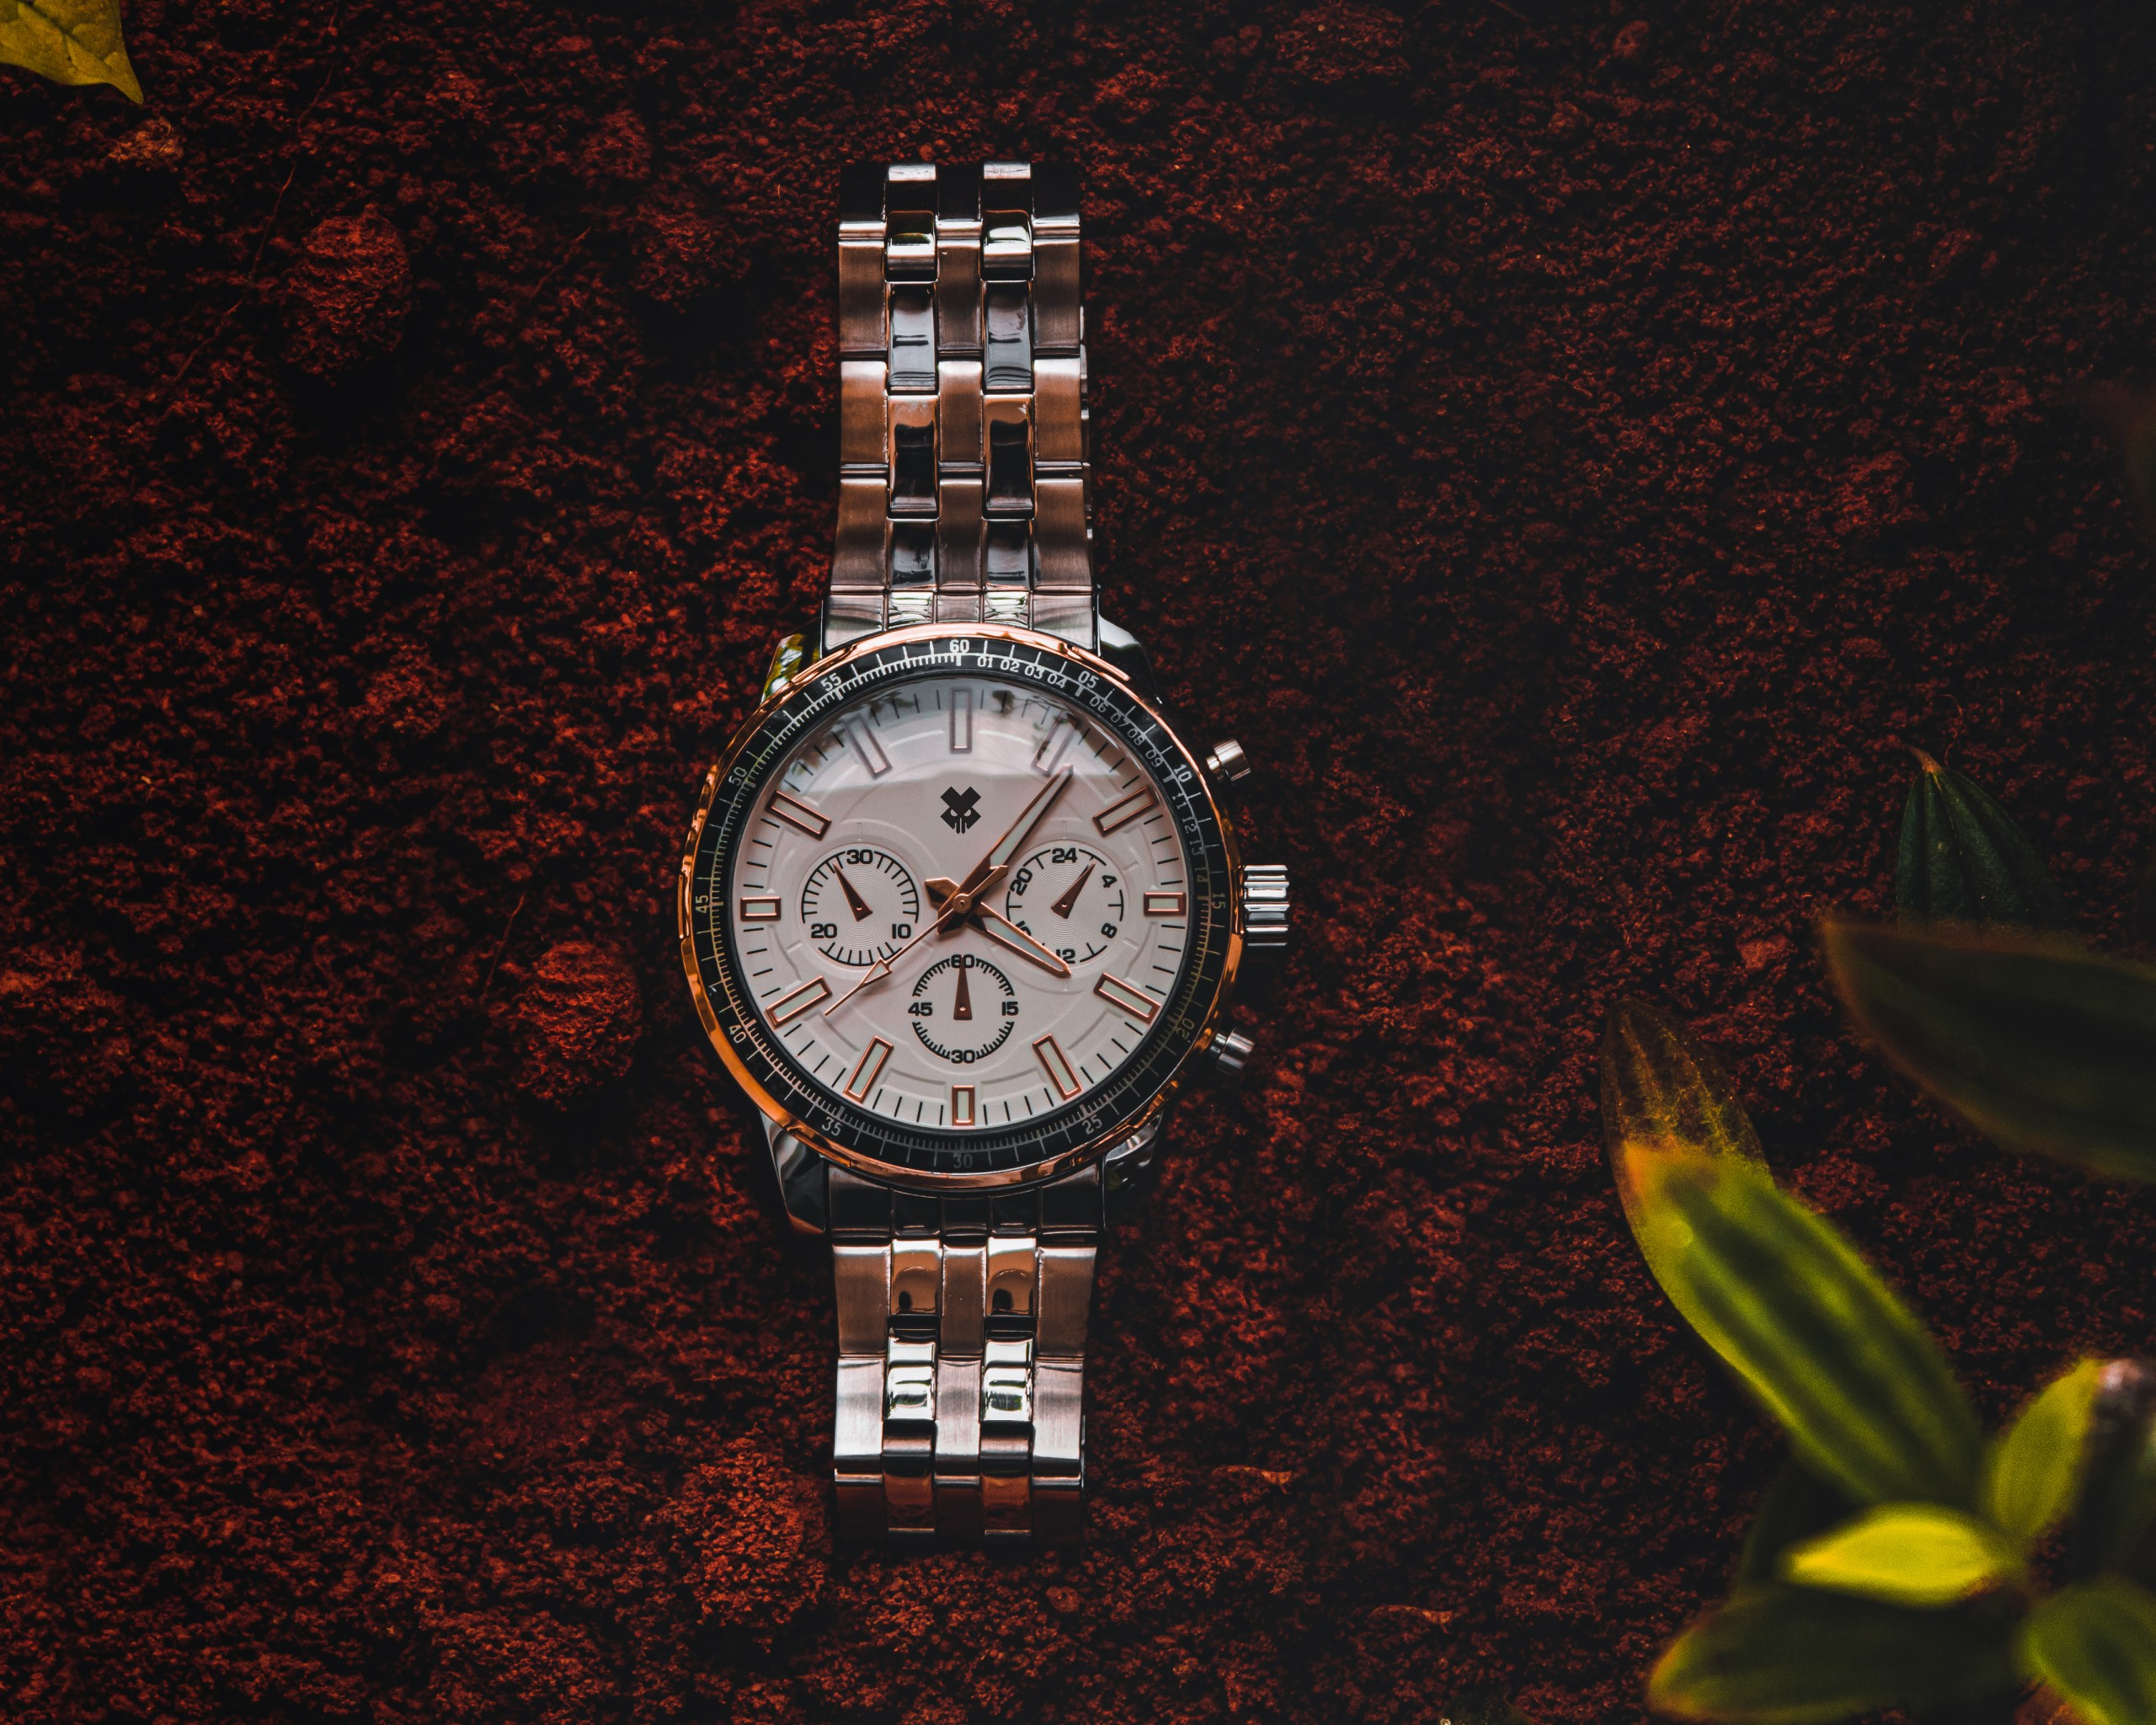 Silver Wristwatch Flat Lay on Focus